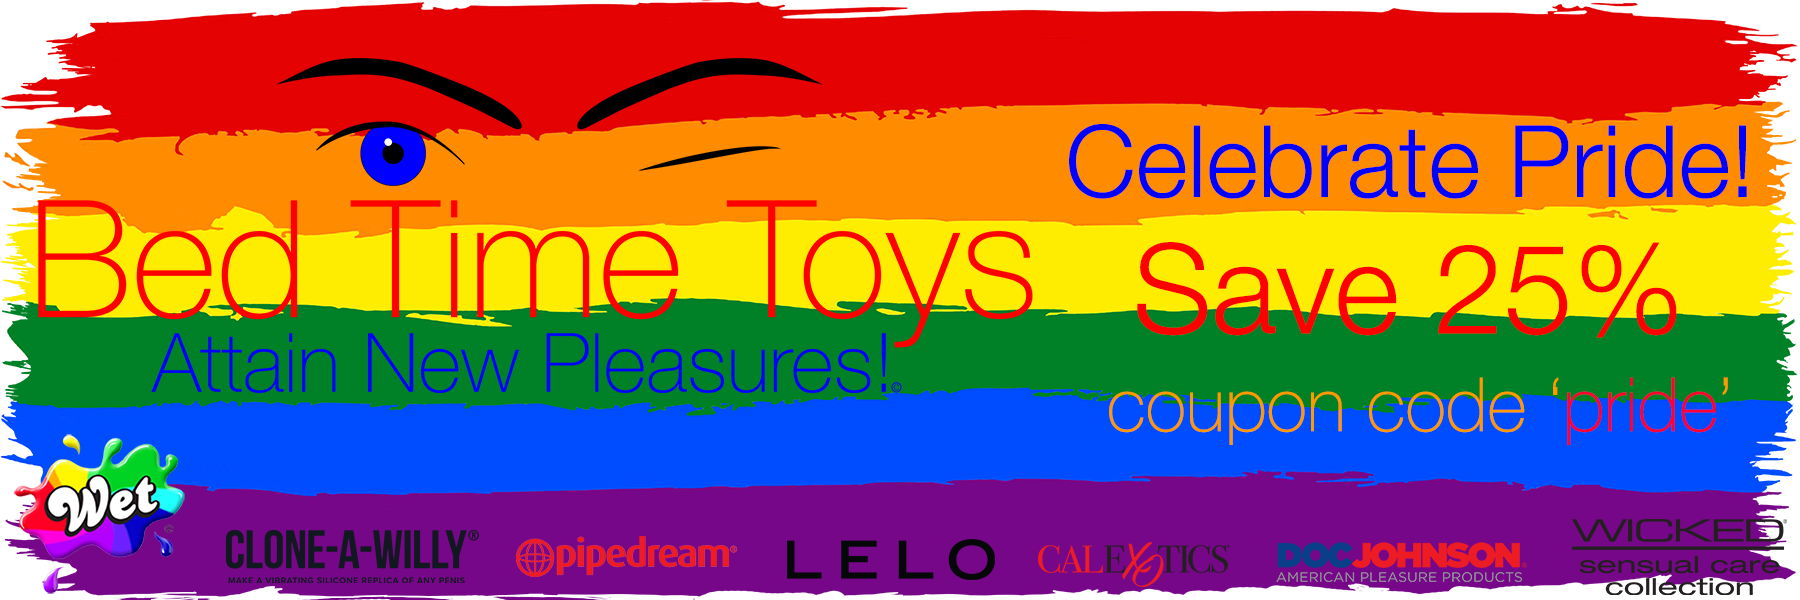 Bed Time Toys, Pride Sale, Sex Toy, Sale